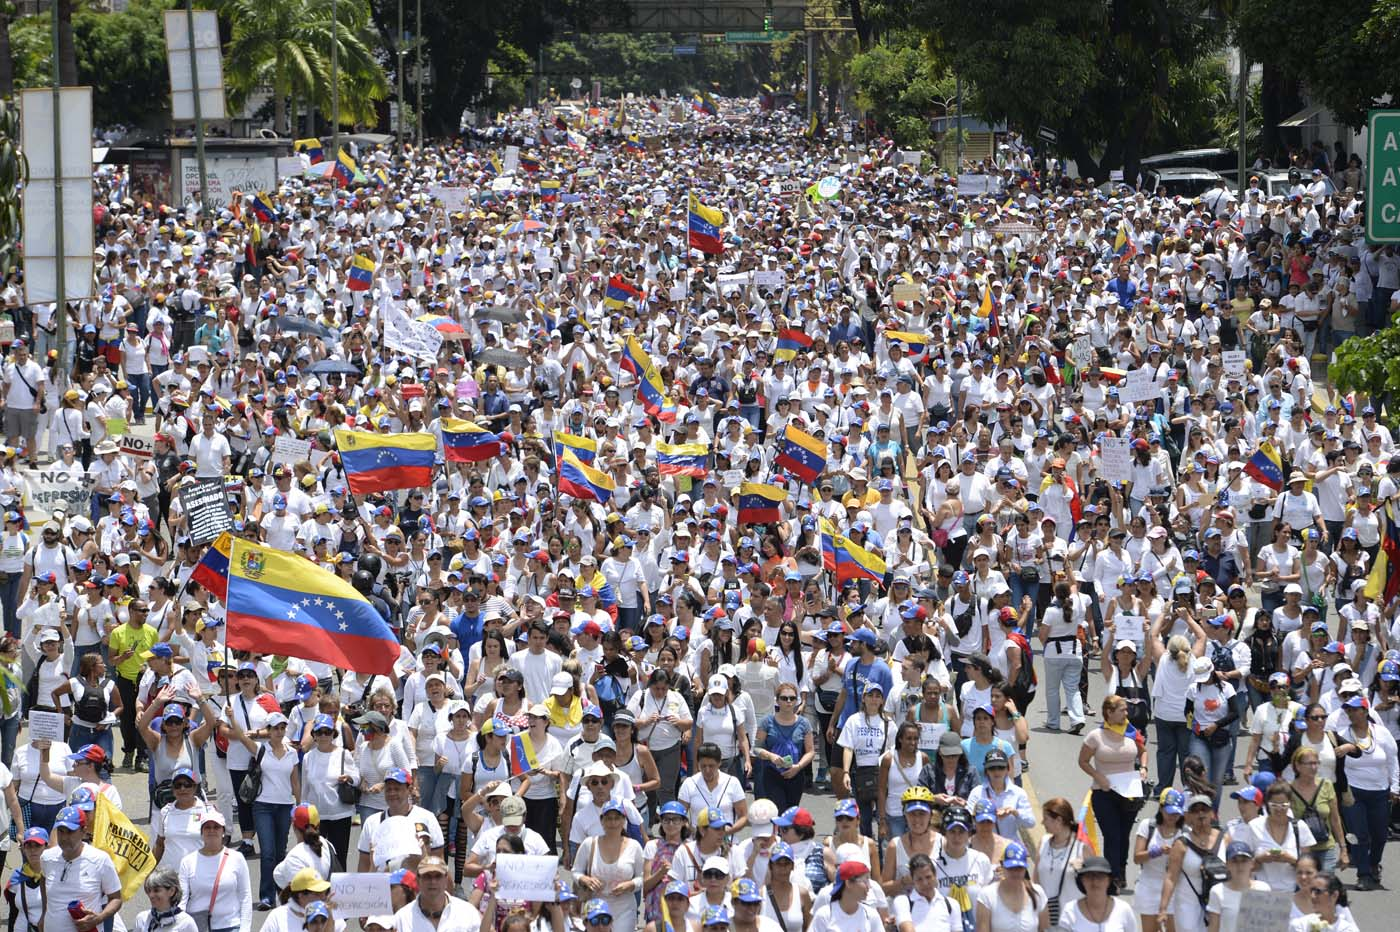 Venezuelan opposition activists take part in a women's march aimed to keep pressure on President Nicolas Maduro, whose authority is being increasingly challenged by protests and deadly unrest, in Caracas on May 6, 2017. The death toll since April, when the protests intensified after Maduro's administration and the courts stepped up efforts to undermine the opposition, is at least 36 according to prosecutors. / AFP PHOTO / FEDERICO PARRA